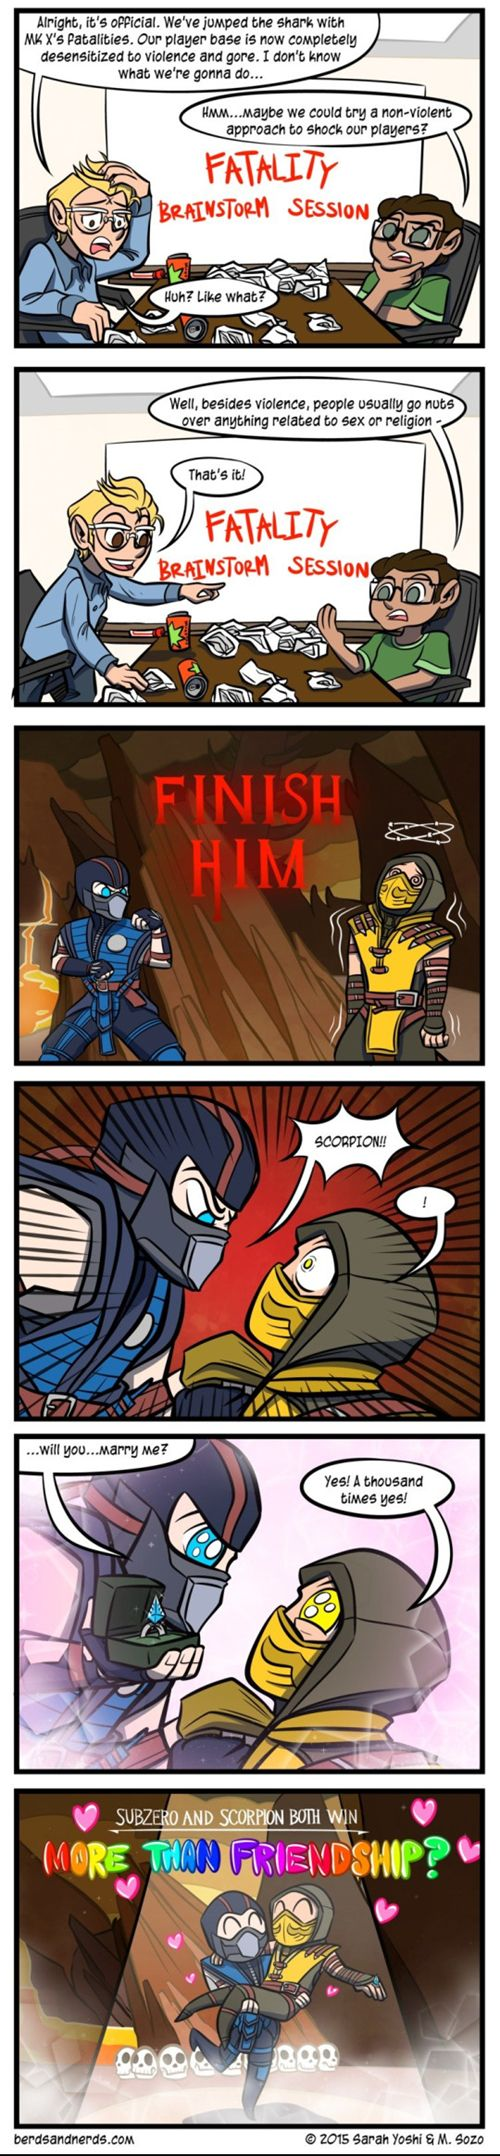 Mortal Kombat's Future Fatalities. Its so anime its making me laugh so hard